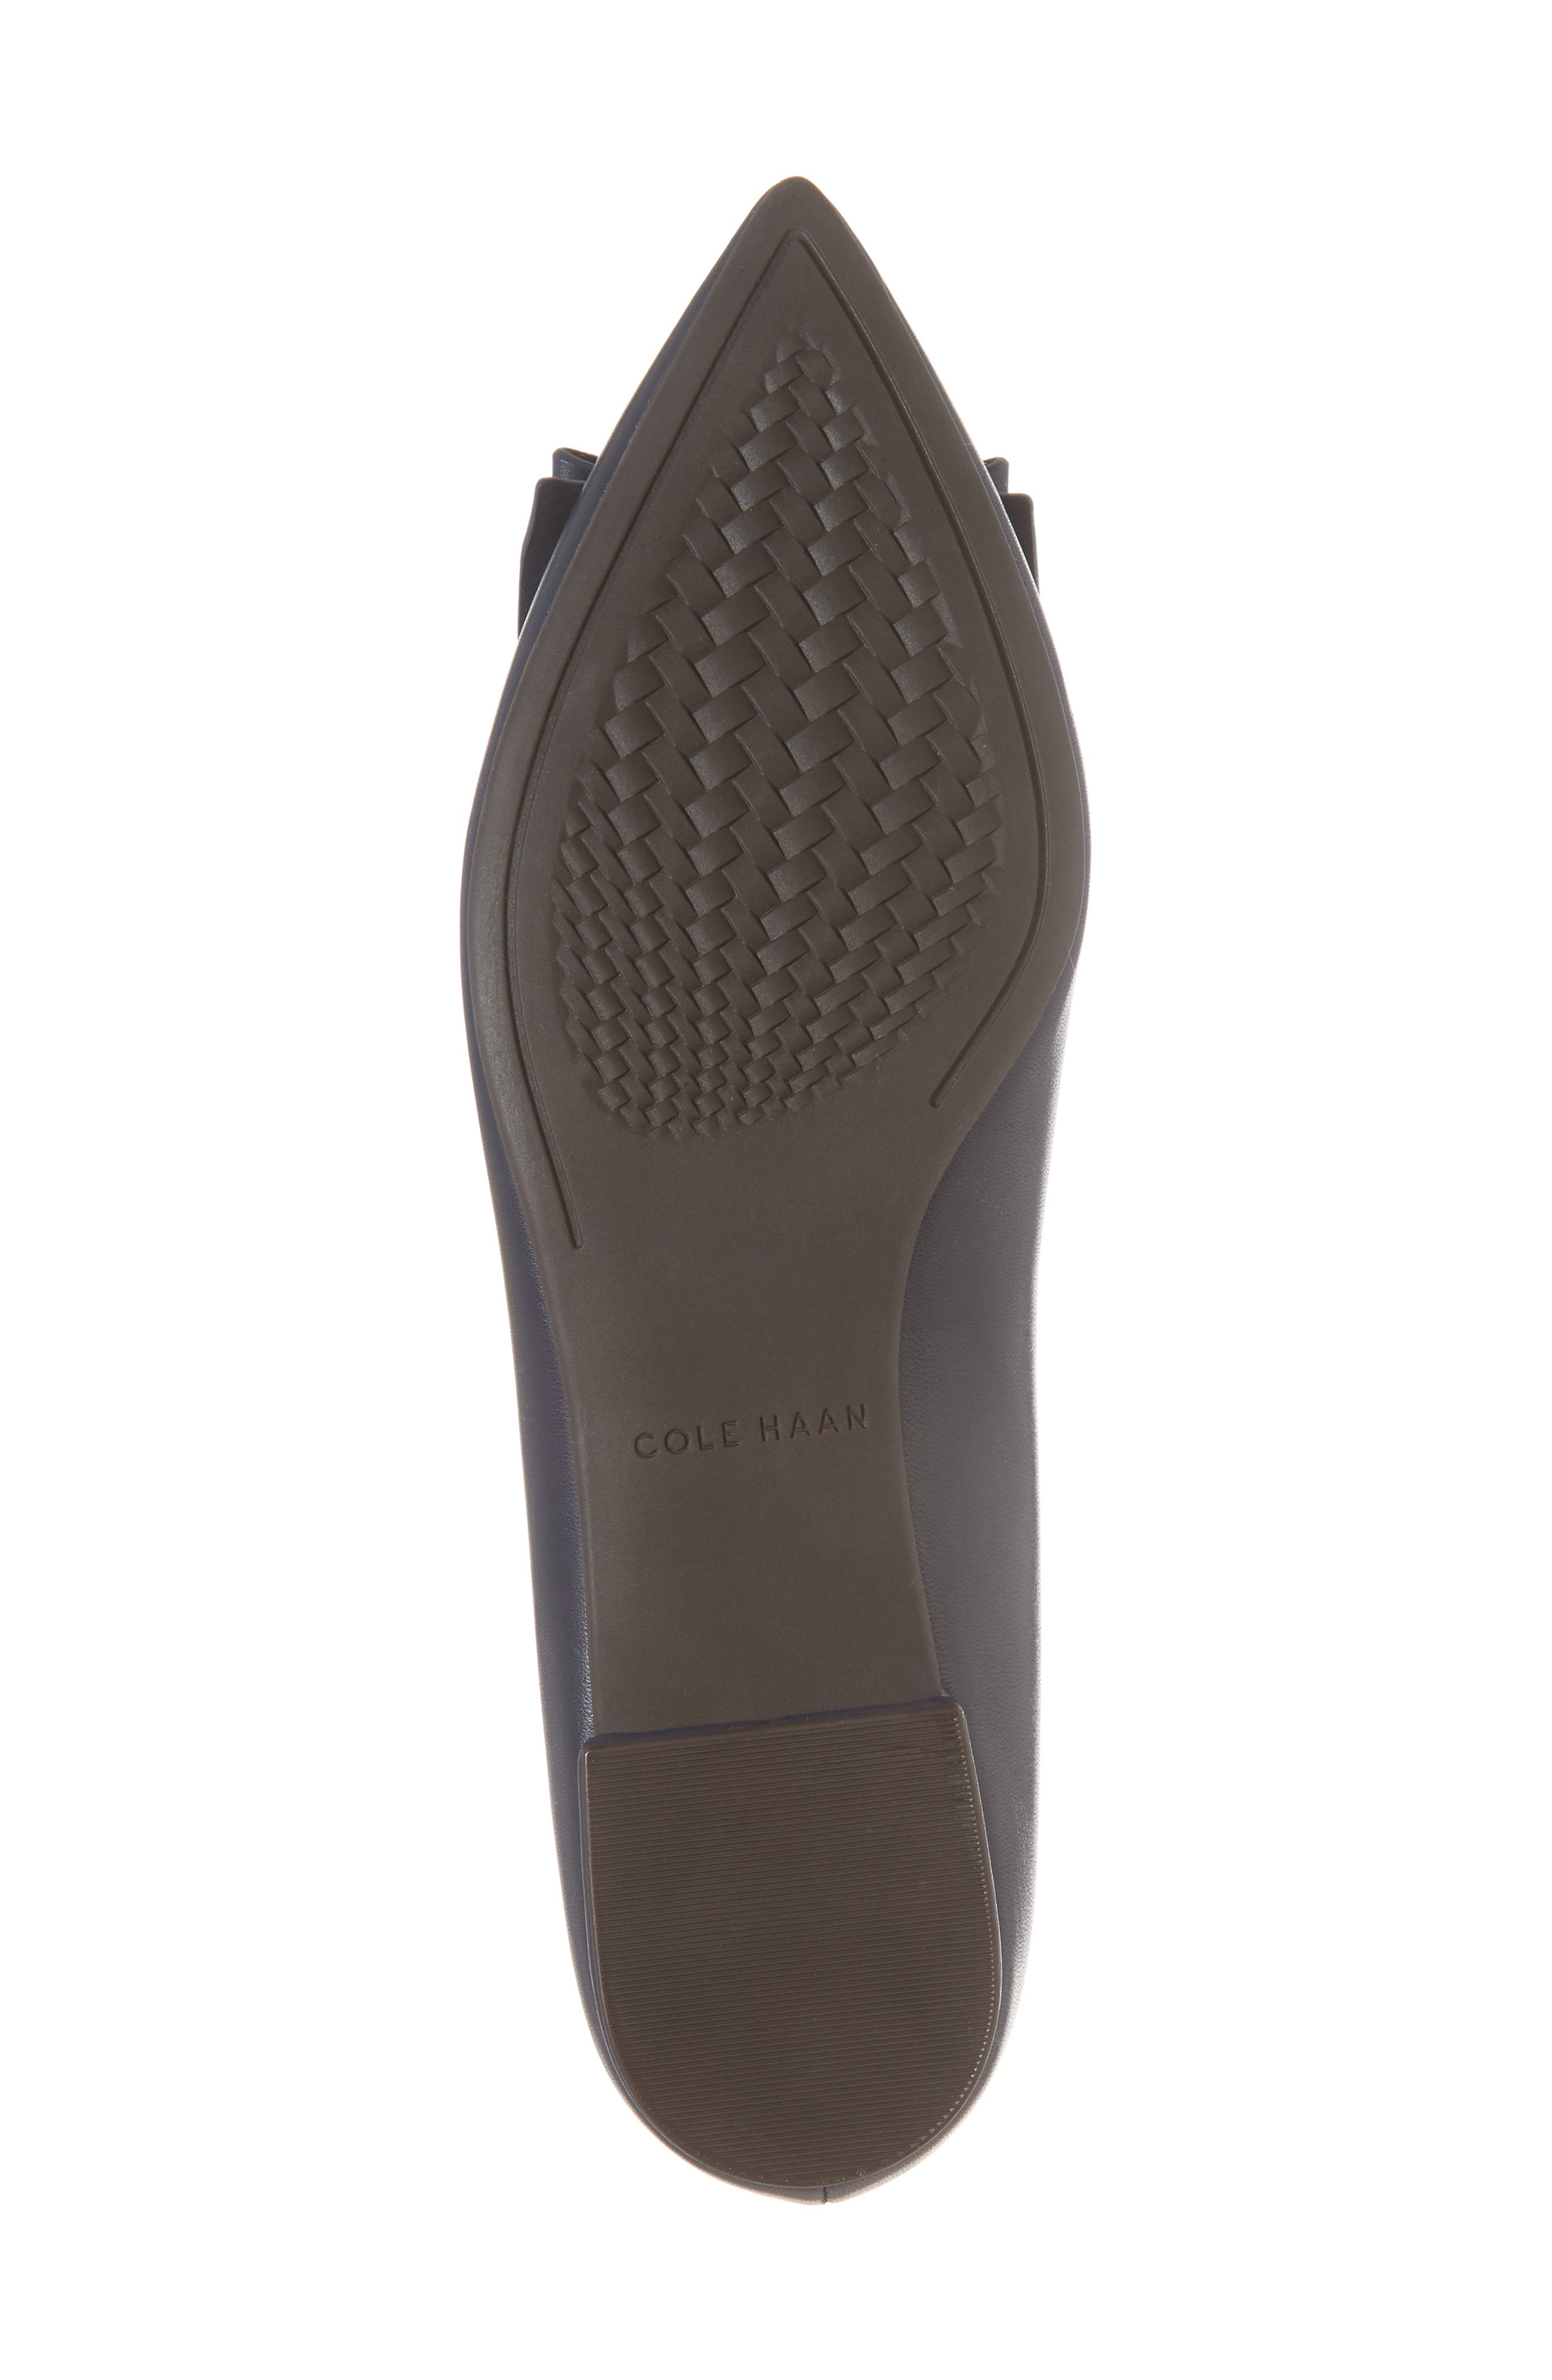 COLE HAAN,                             Tali Bow Skimmer Flat,                             Alternate thumbnail 6, color,                             400